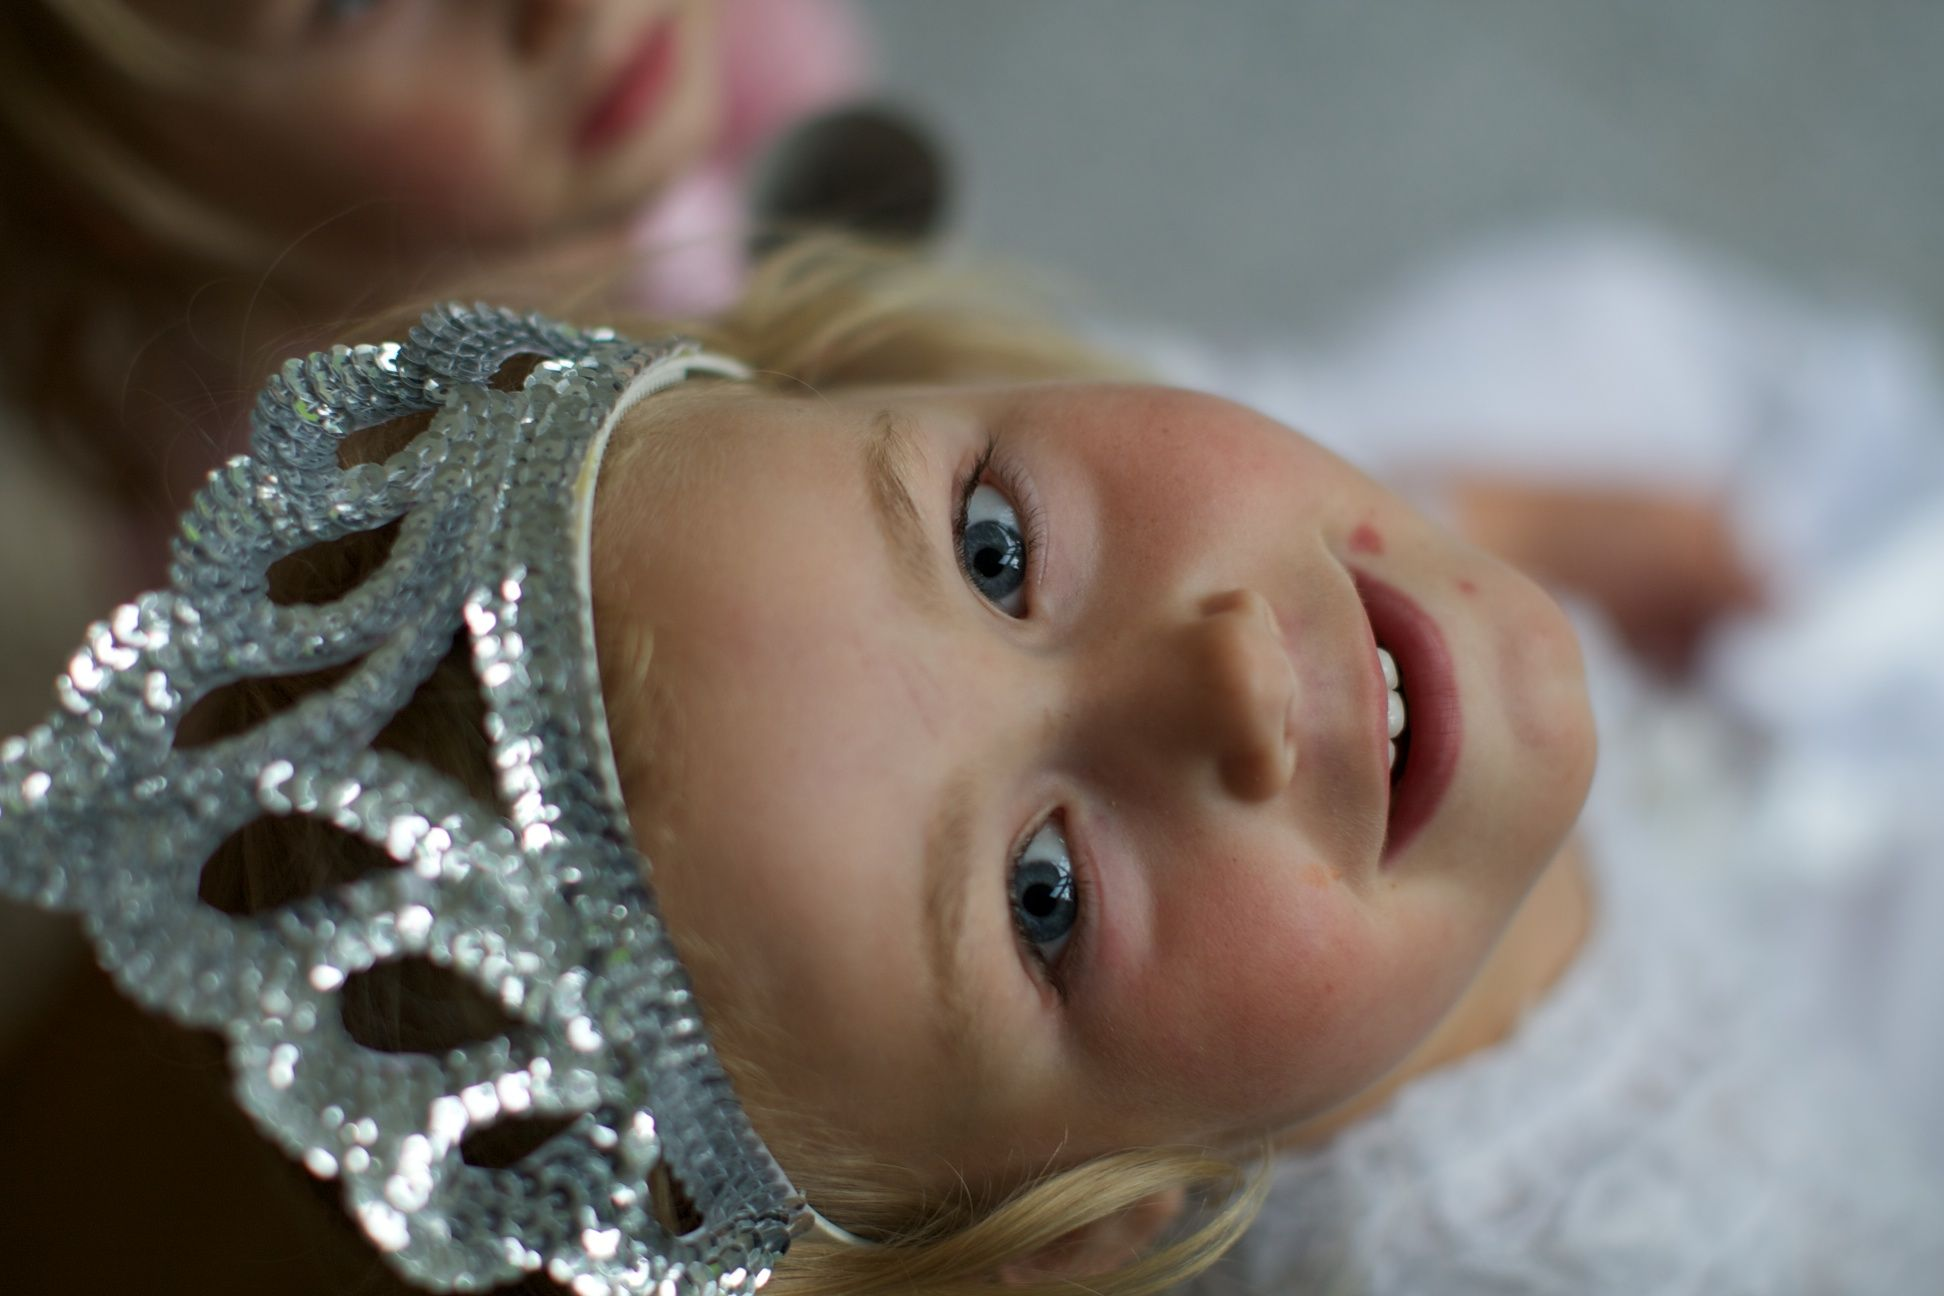 Be a princess for a day. My crowned daughter Charlotte - visibly happy